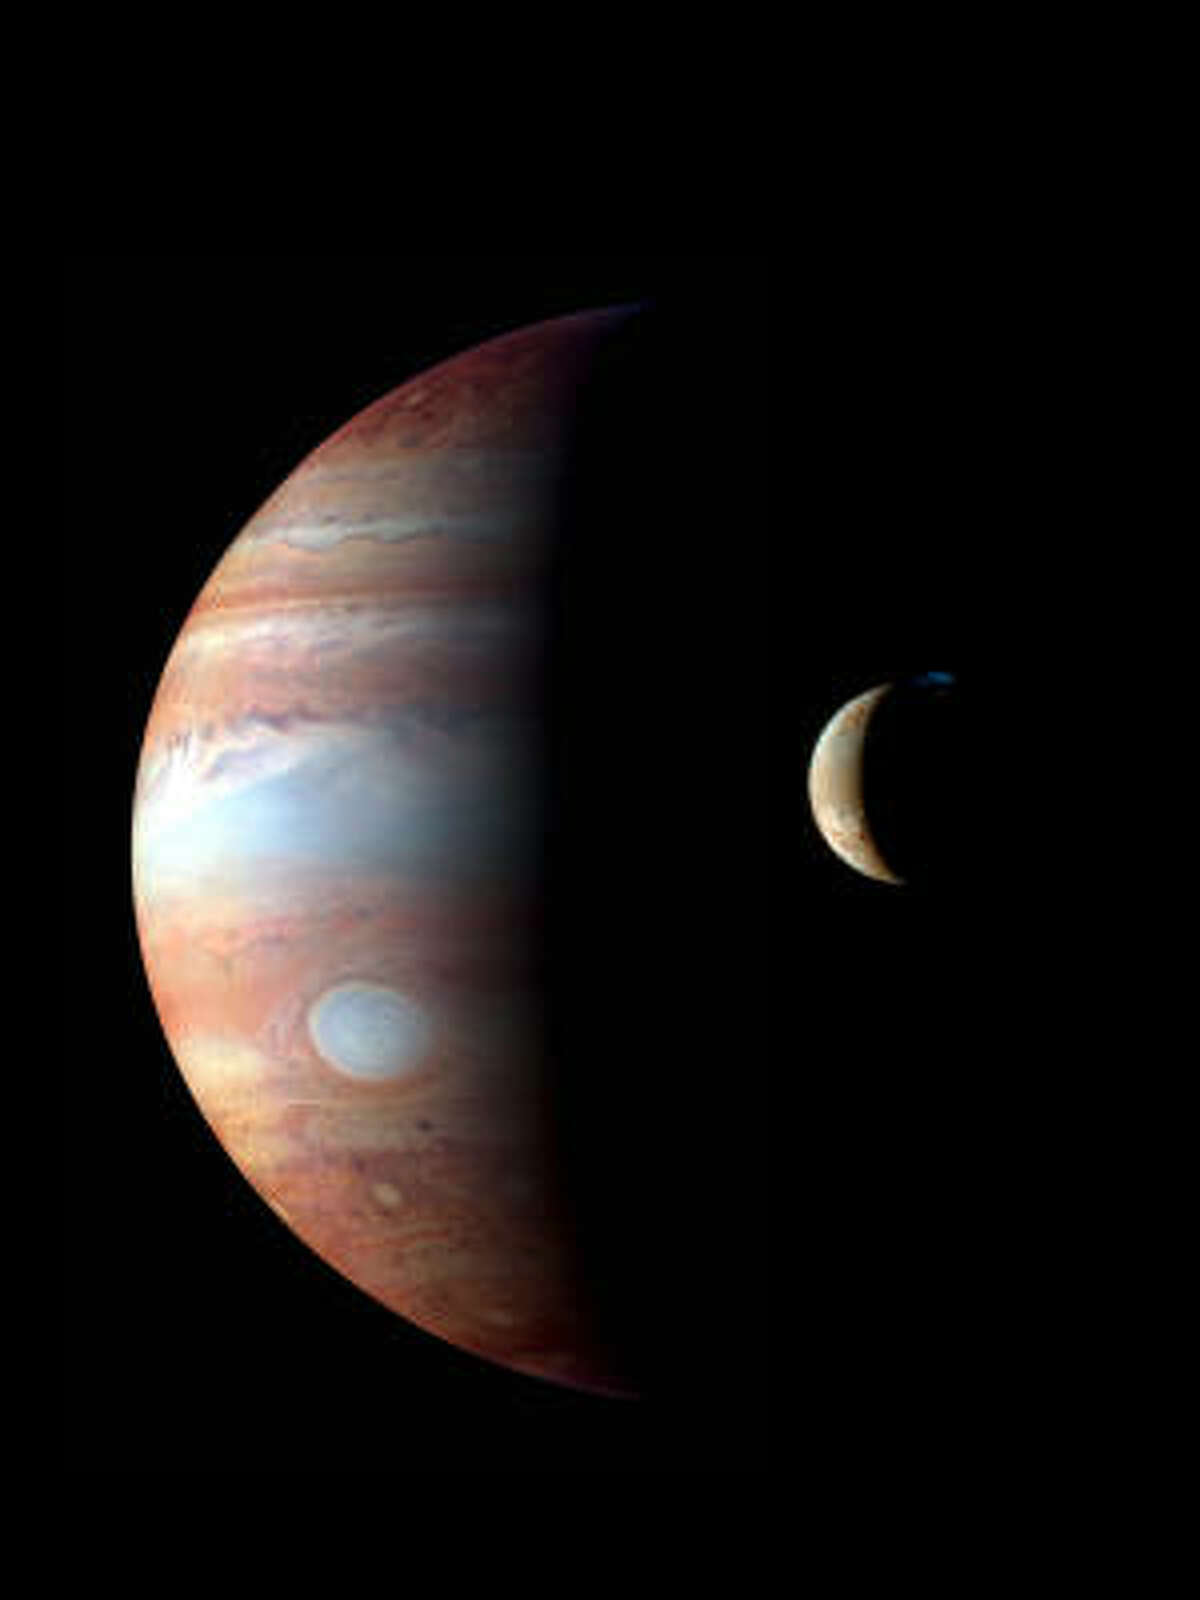 The Houston Symphony will perform Gustav Holst's The Planets with a new film they commissioned that includes space photos from the Cassini spacecraft, the Mars Exploration Rover Mission and the Hubble Space Telescope.